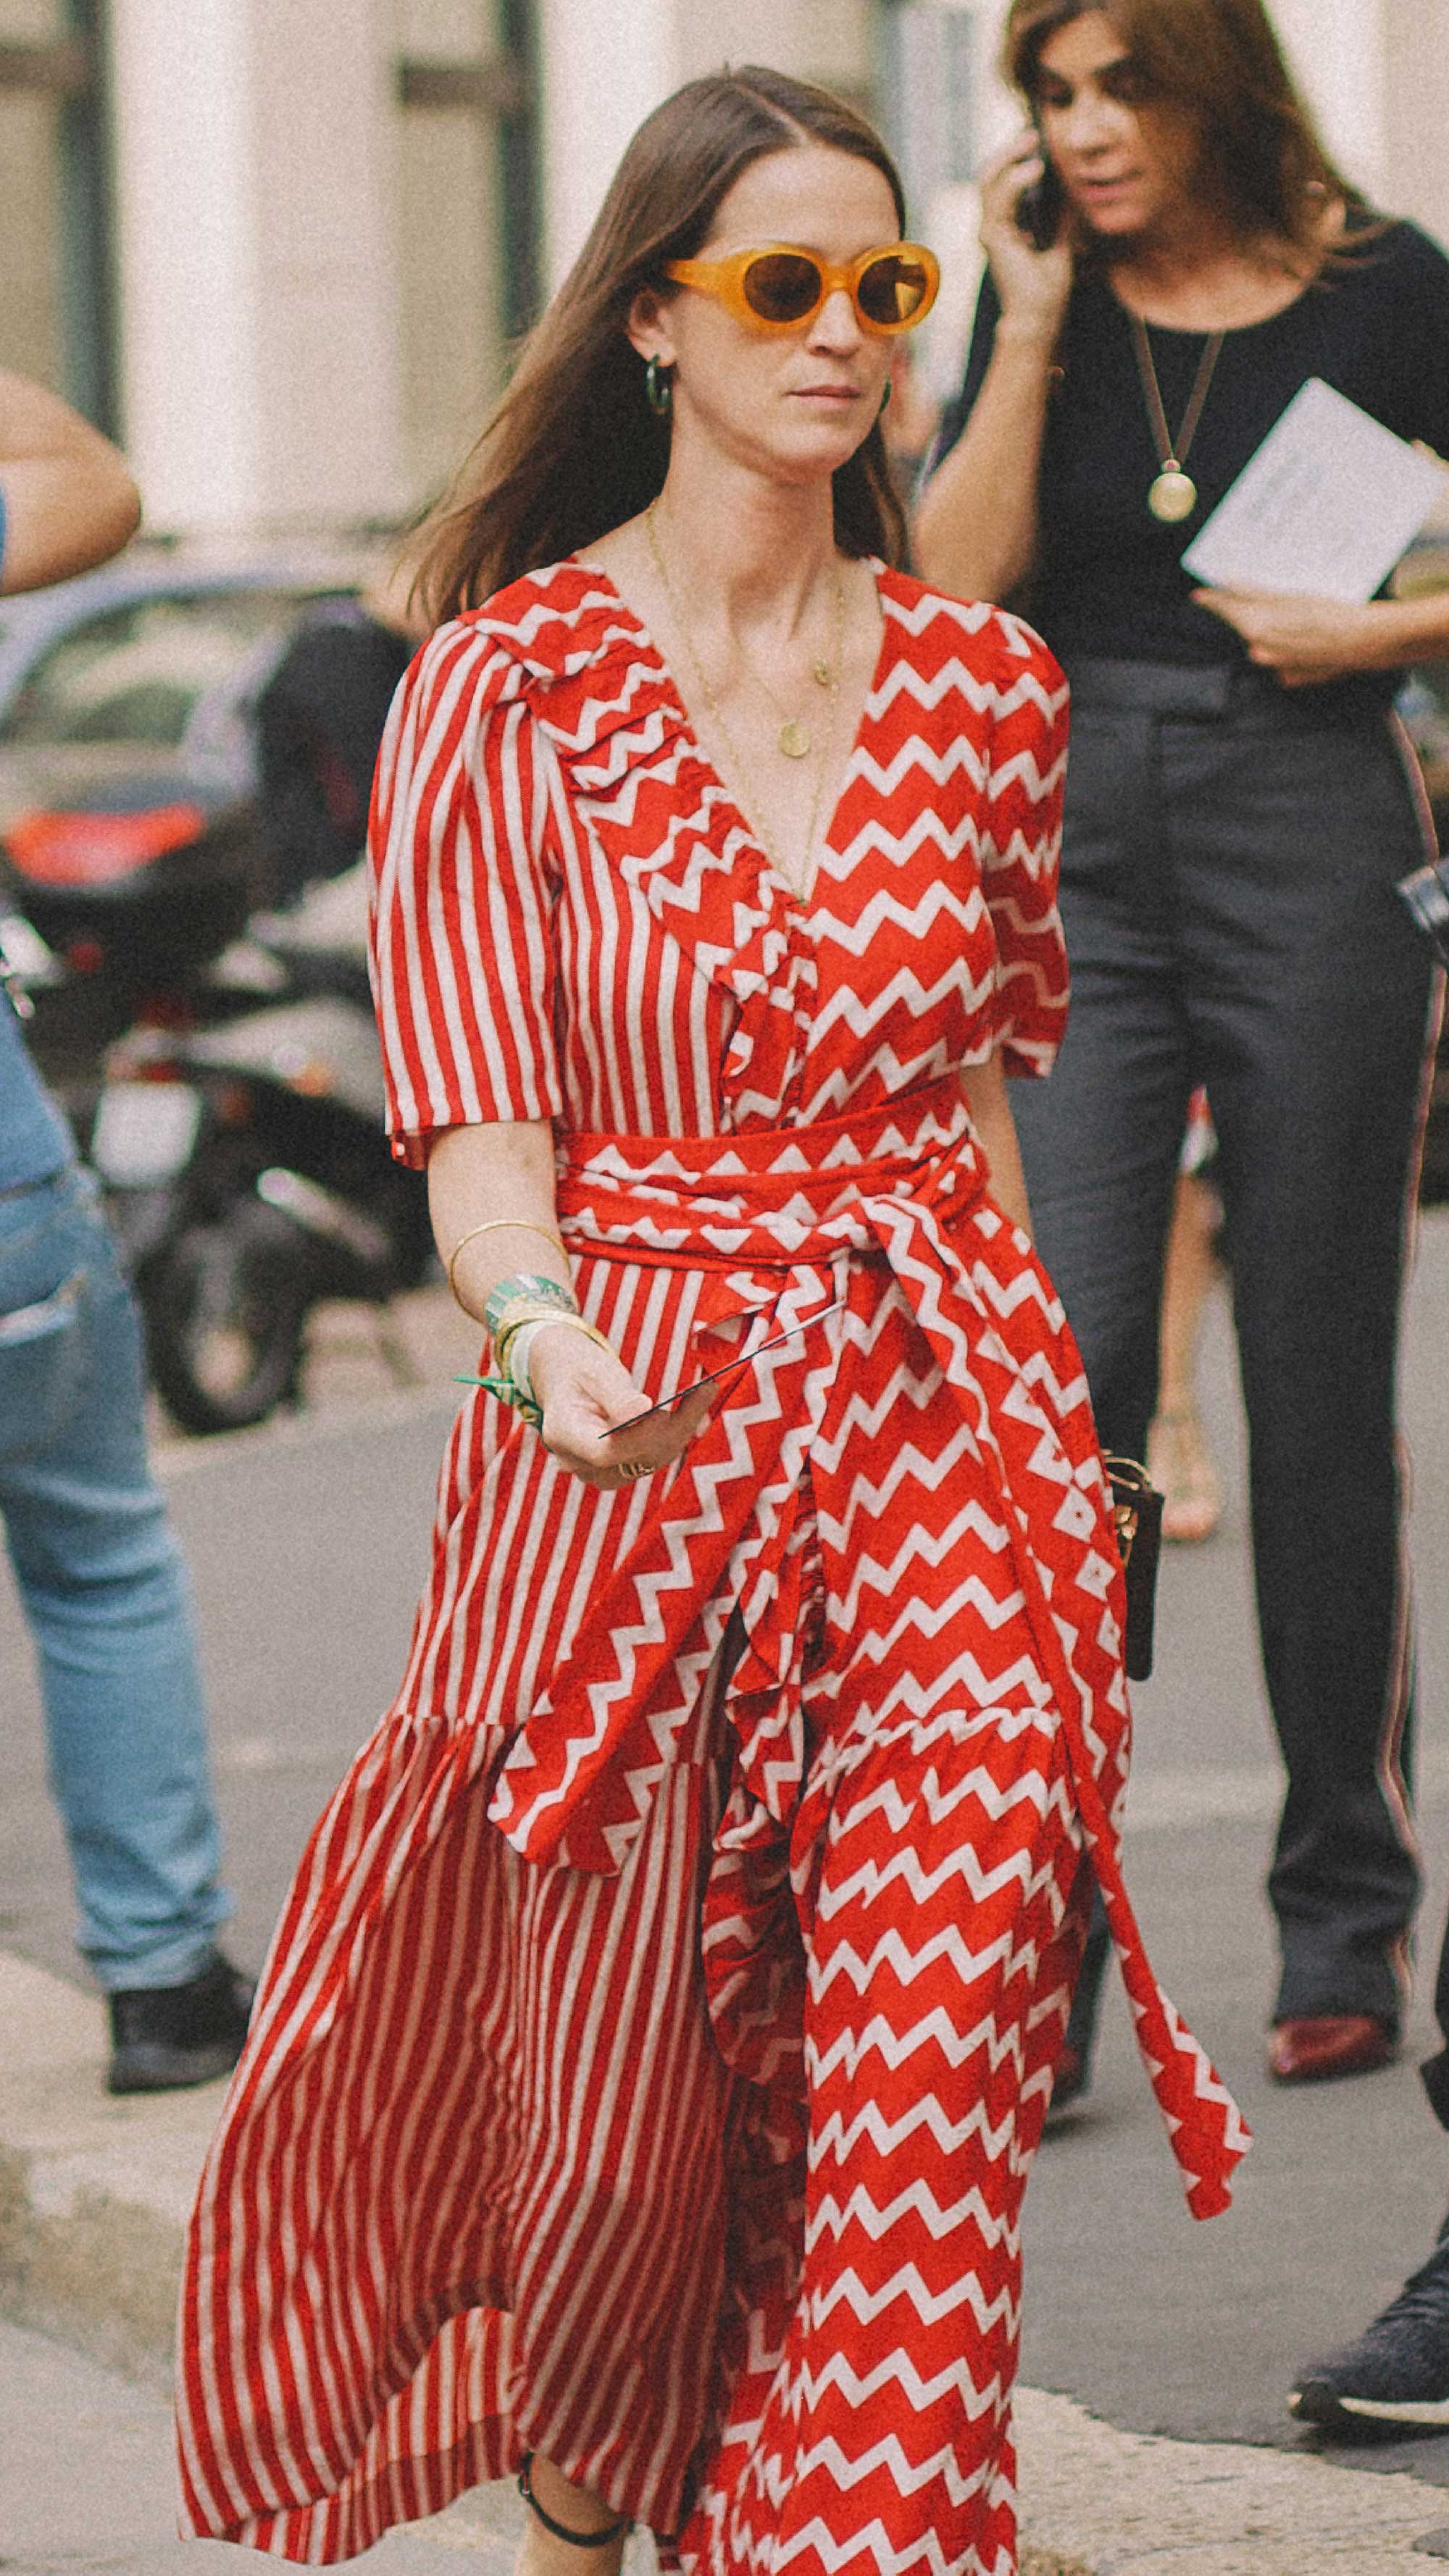 Milan-fashion-street-style-outfits-week-day-four-ss19-4.jpg